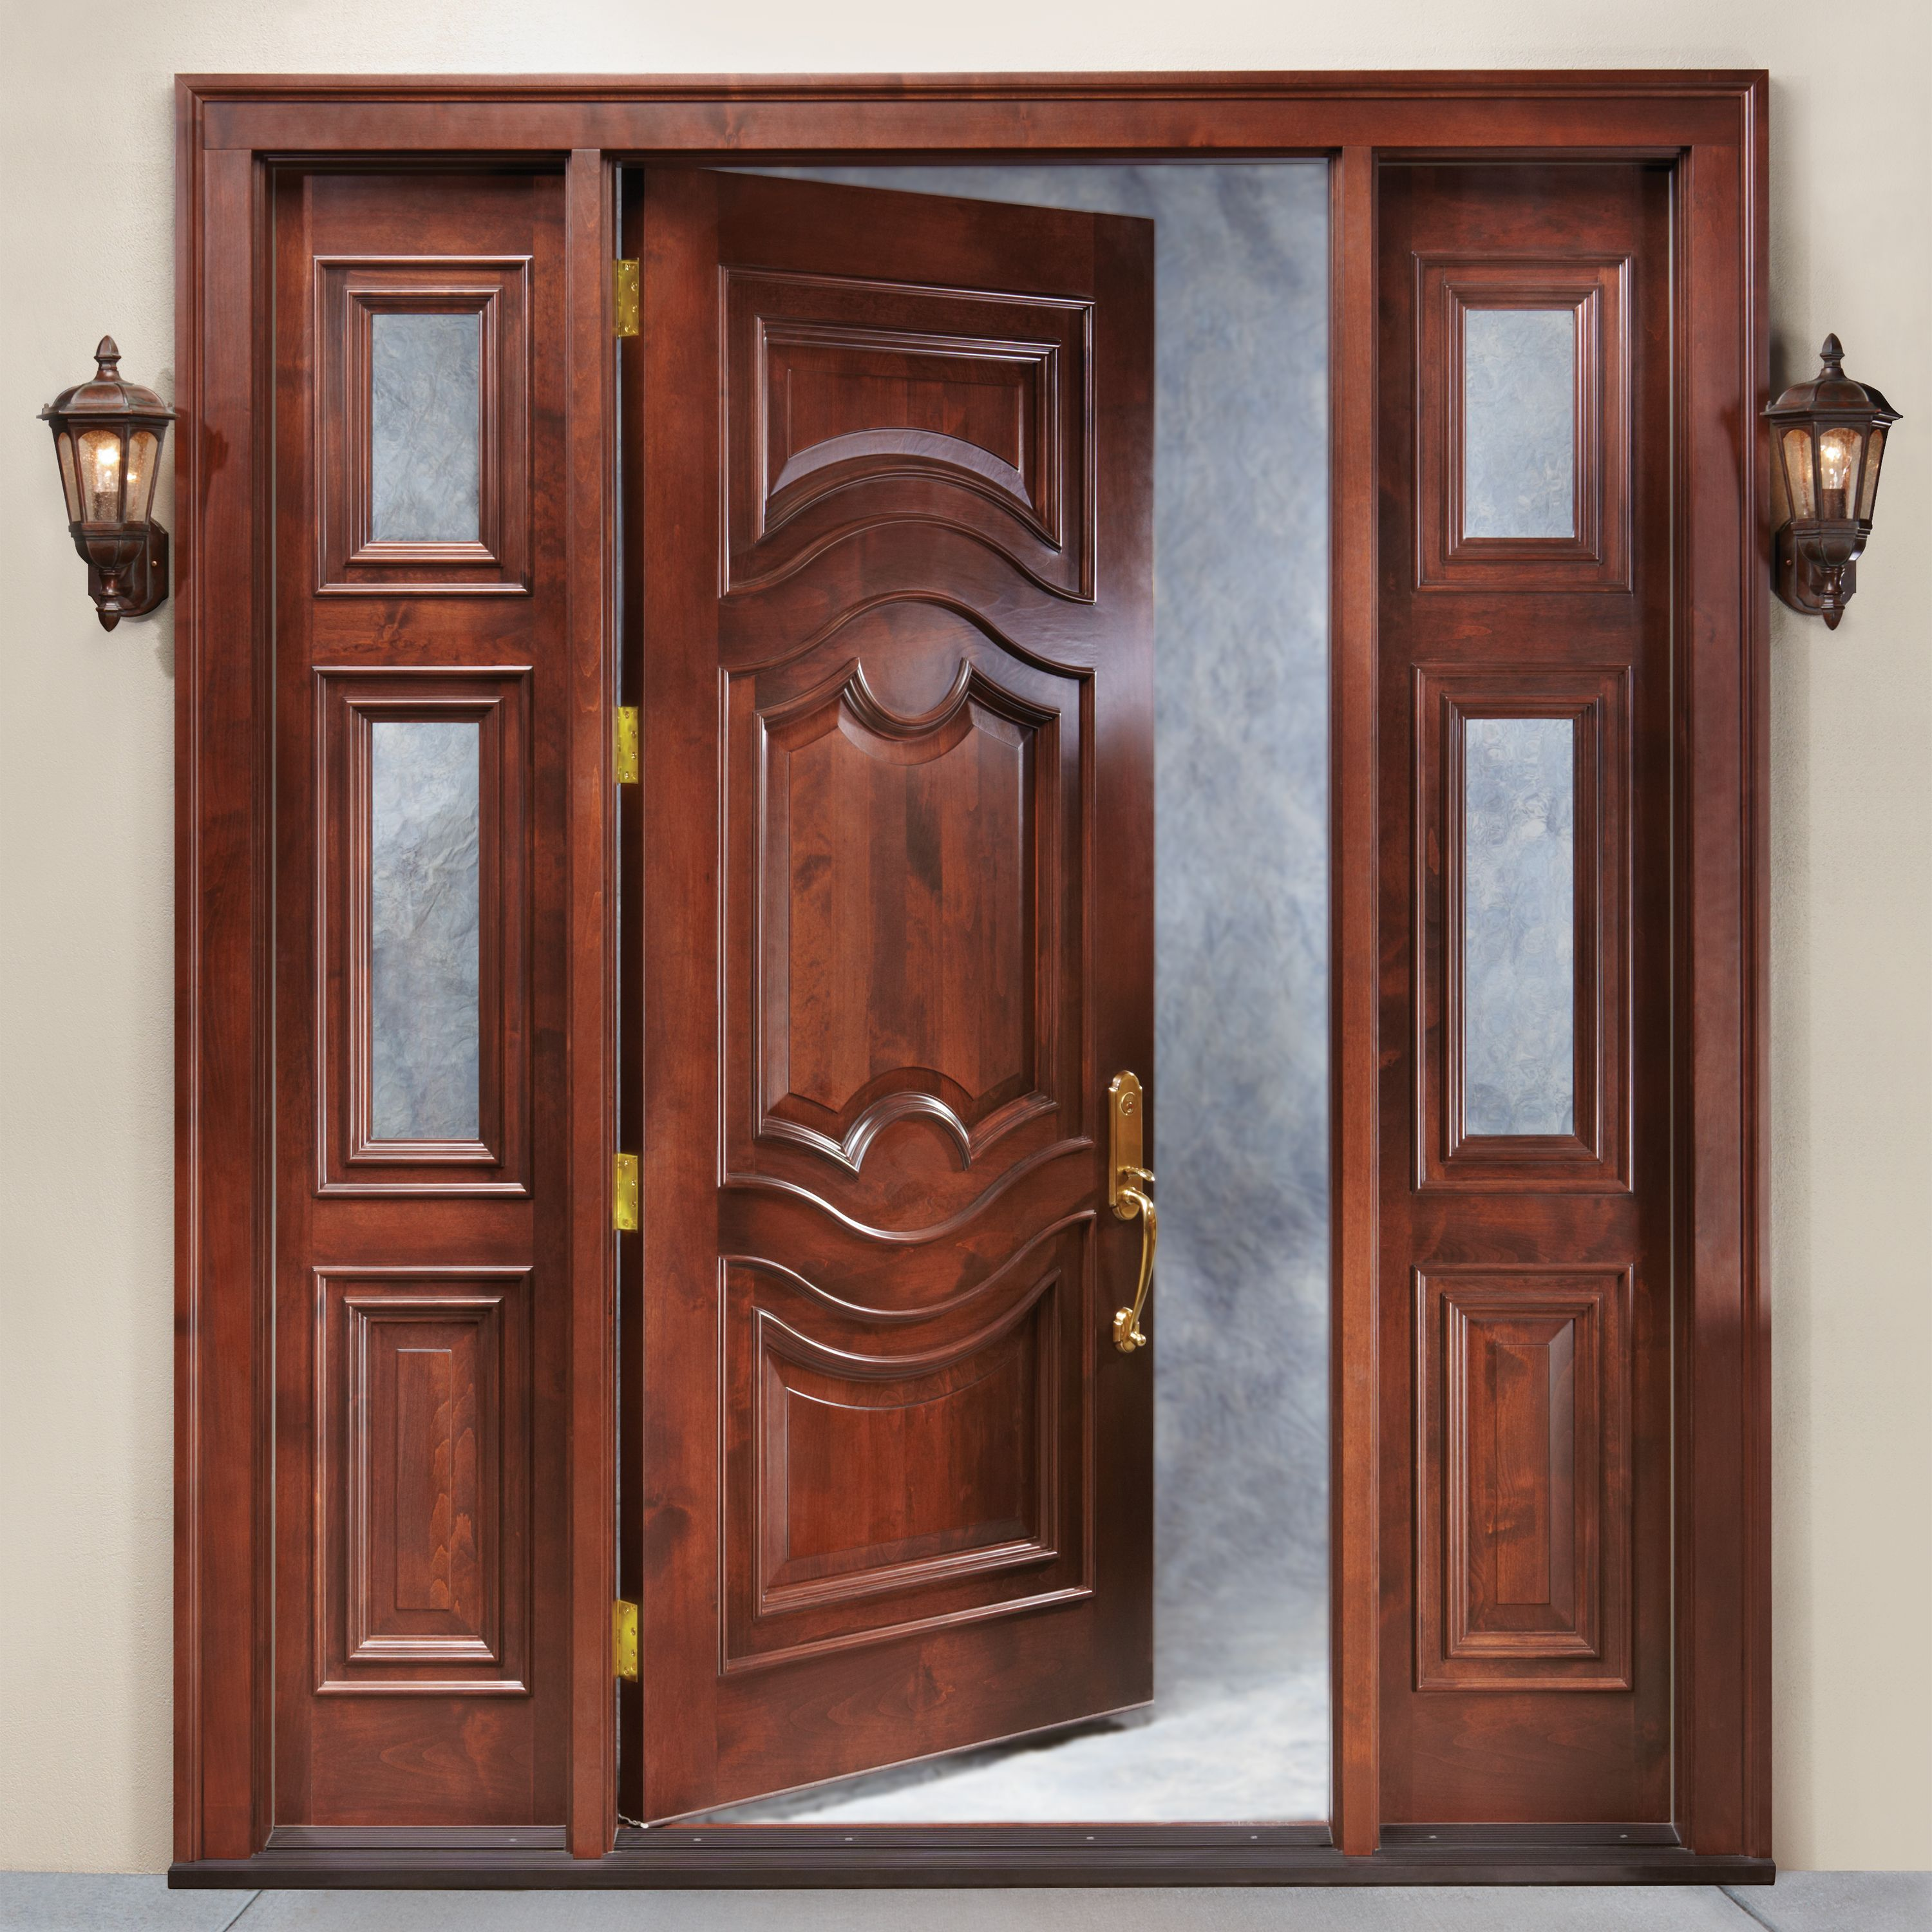 How to Get Aesthetic Customized Wooden Doors For Your Garage?